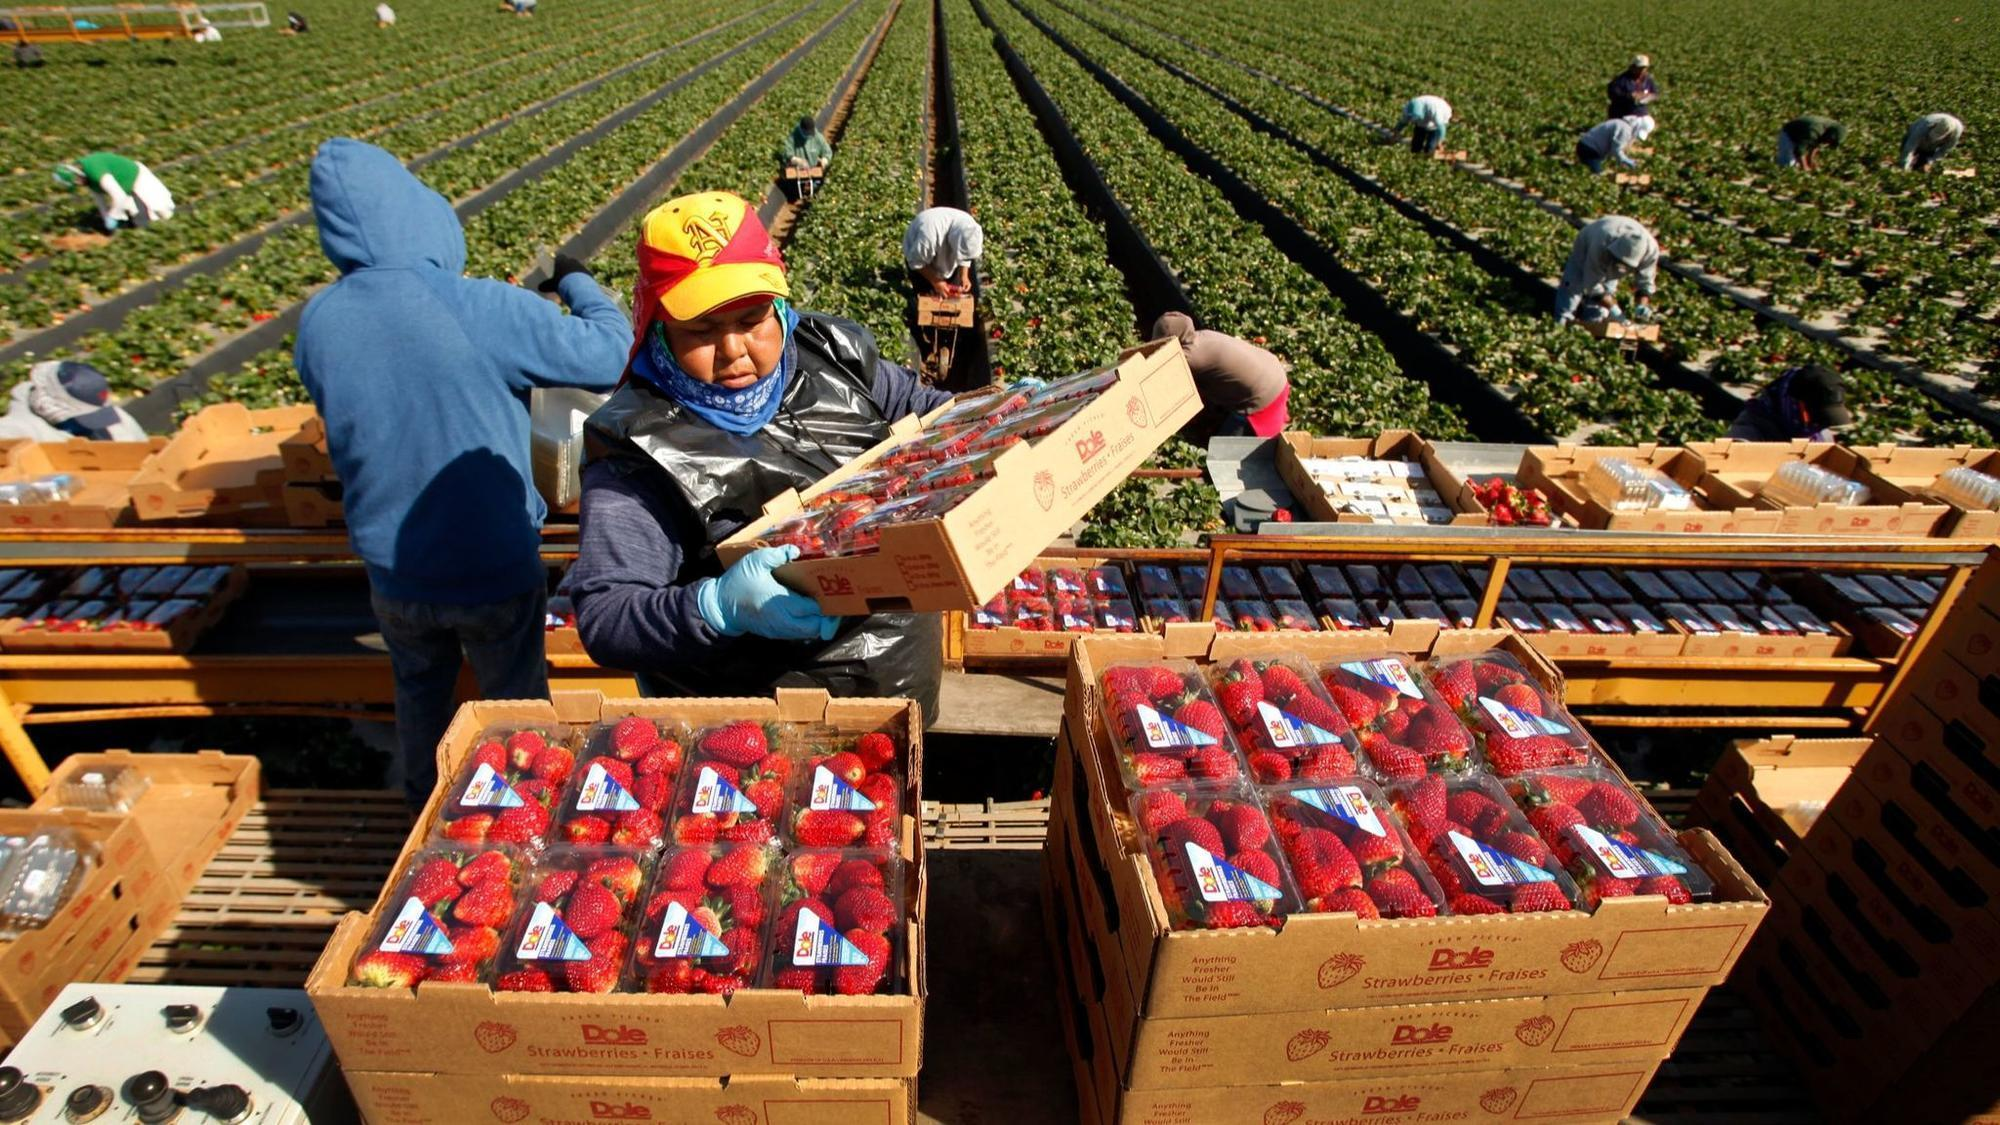 Bad start to the year for berry farms as more layoffs hit